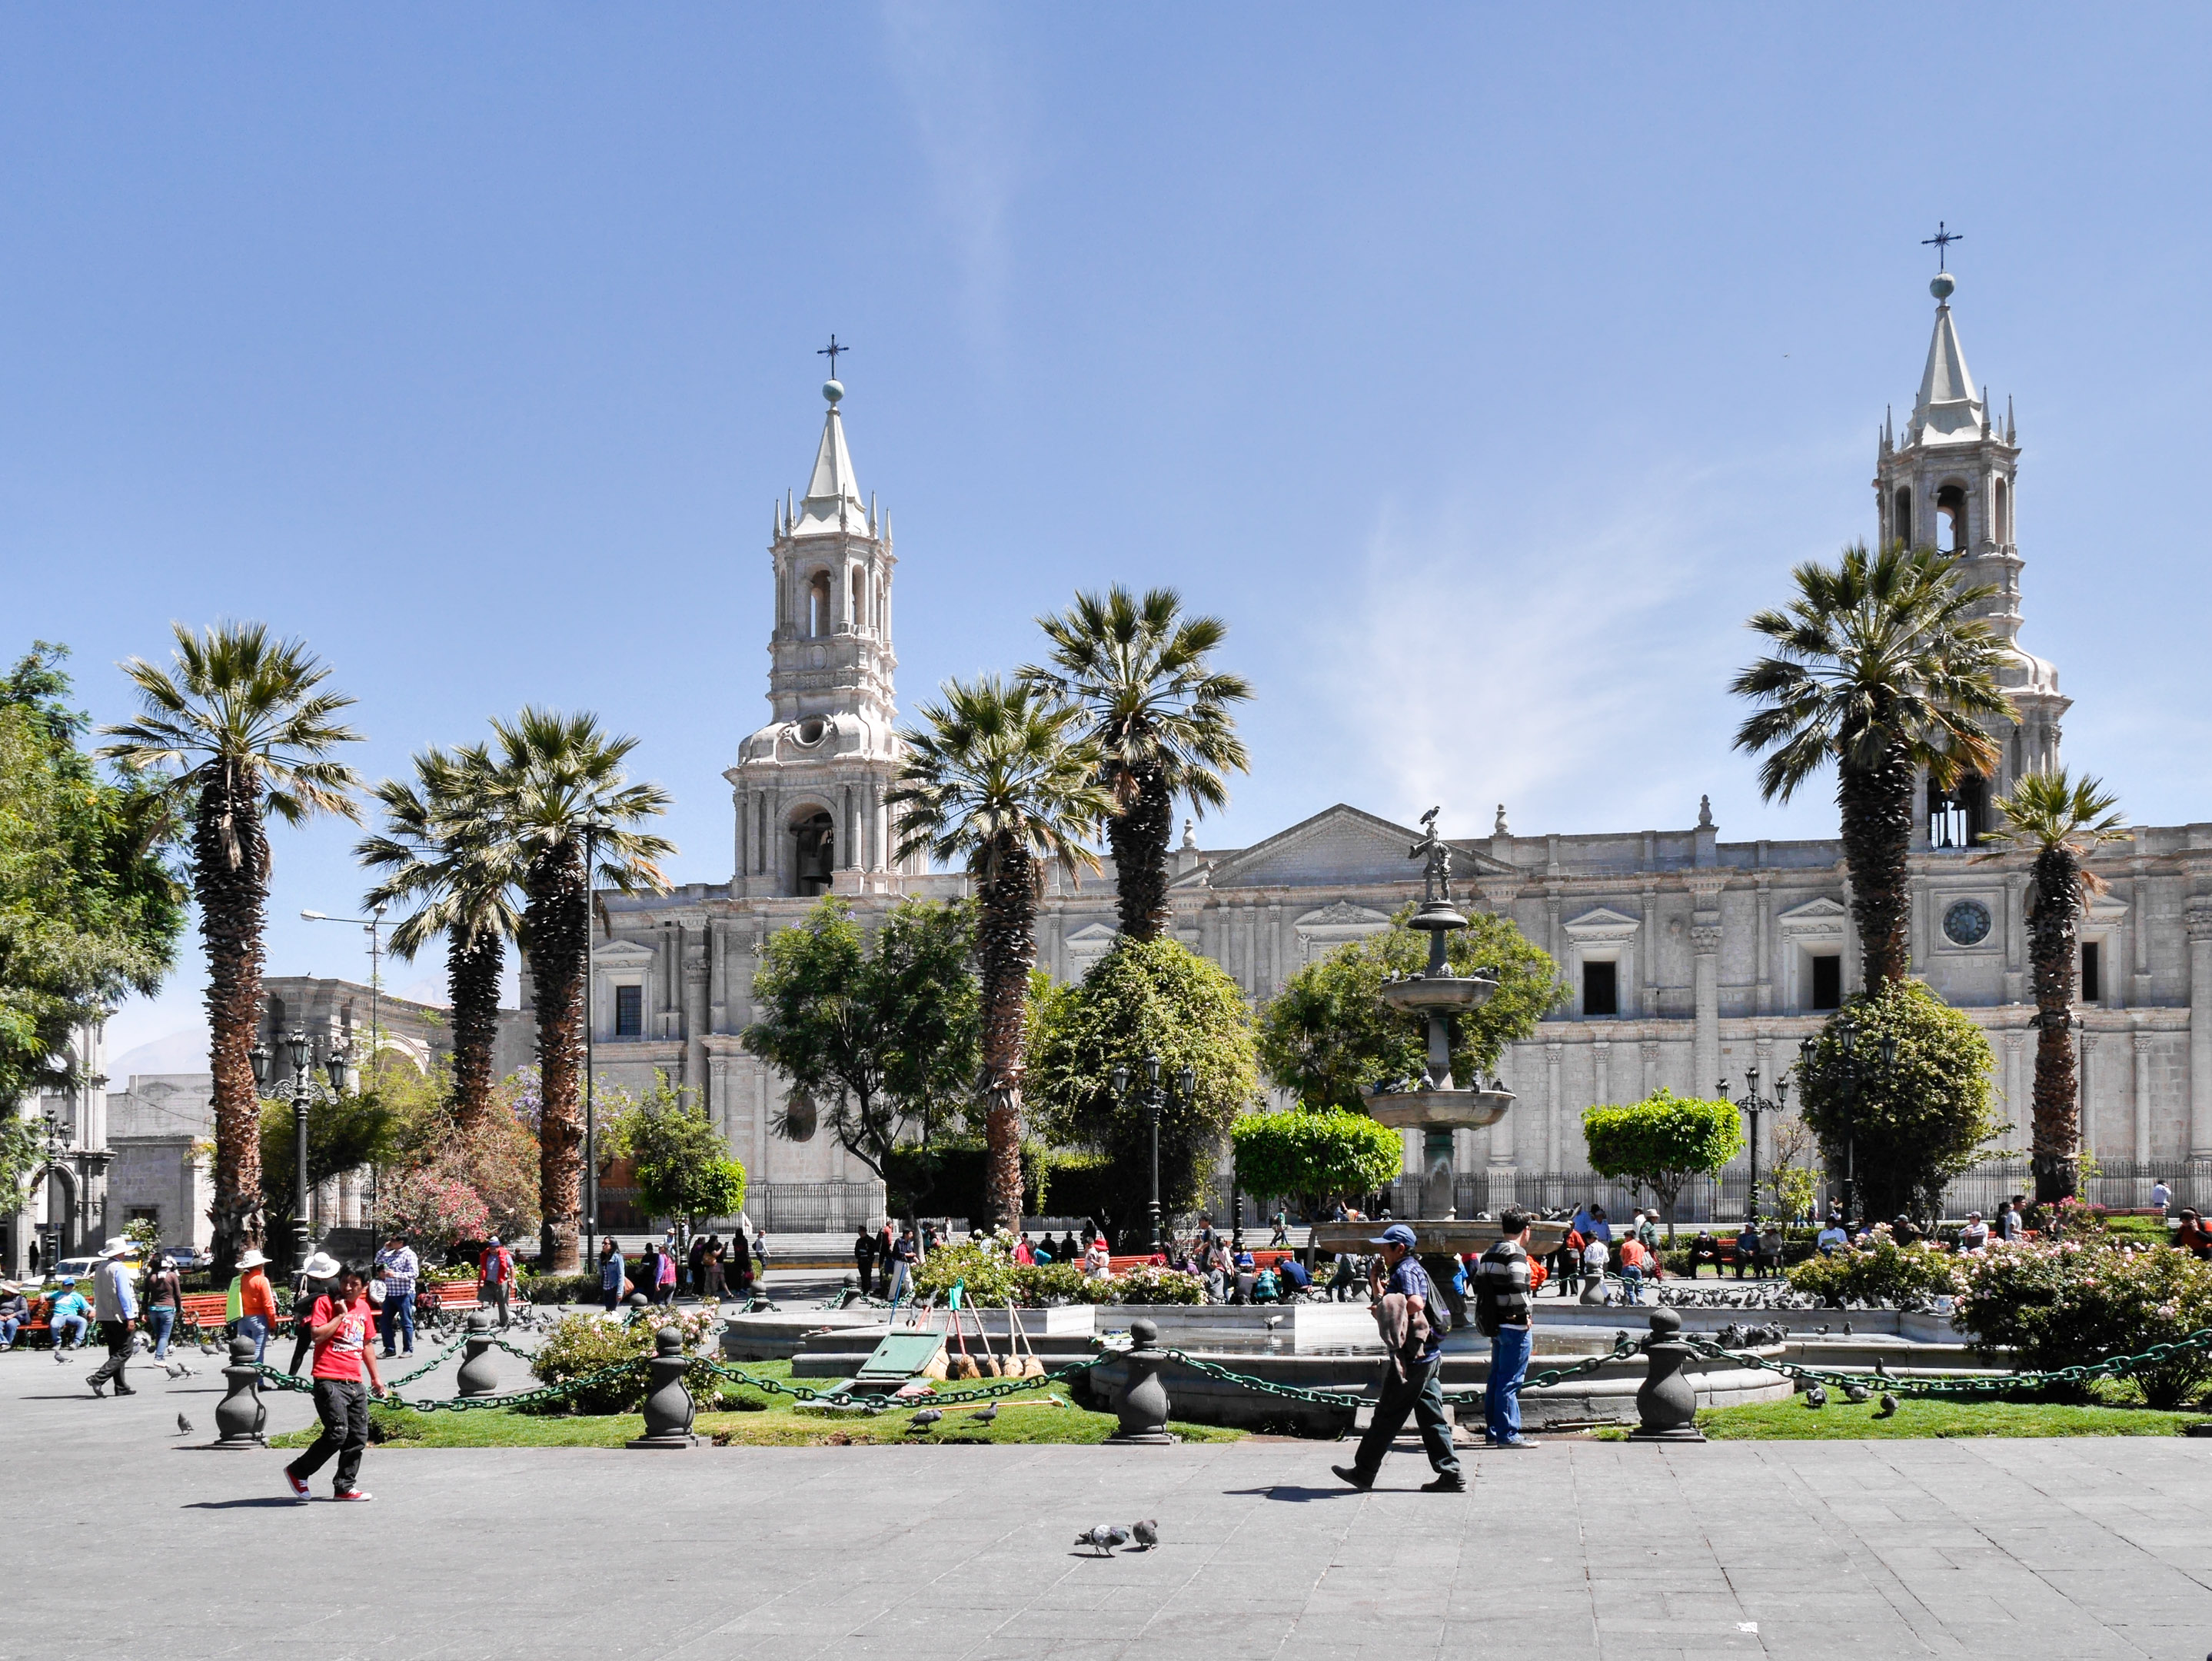 Arequipa - Place d'armes